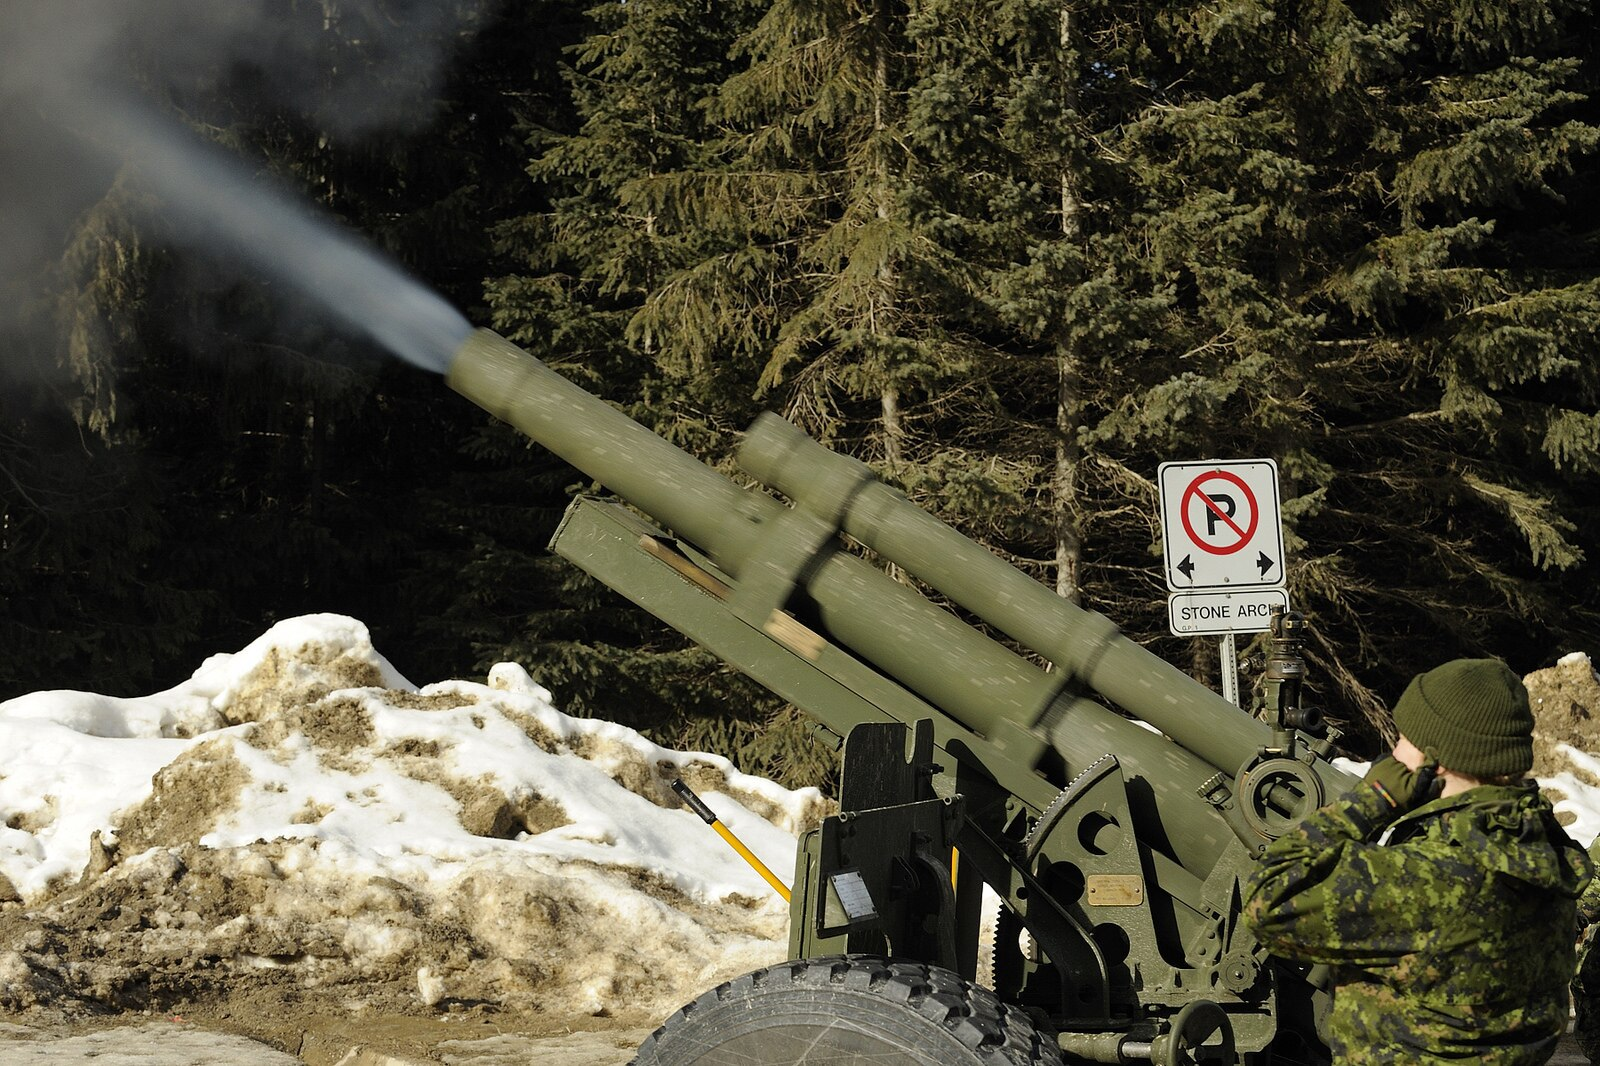 Canadian avalanche control via 105mm howitzer